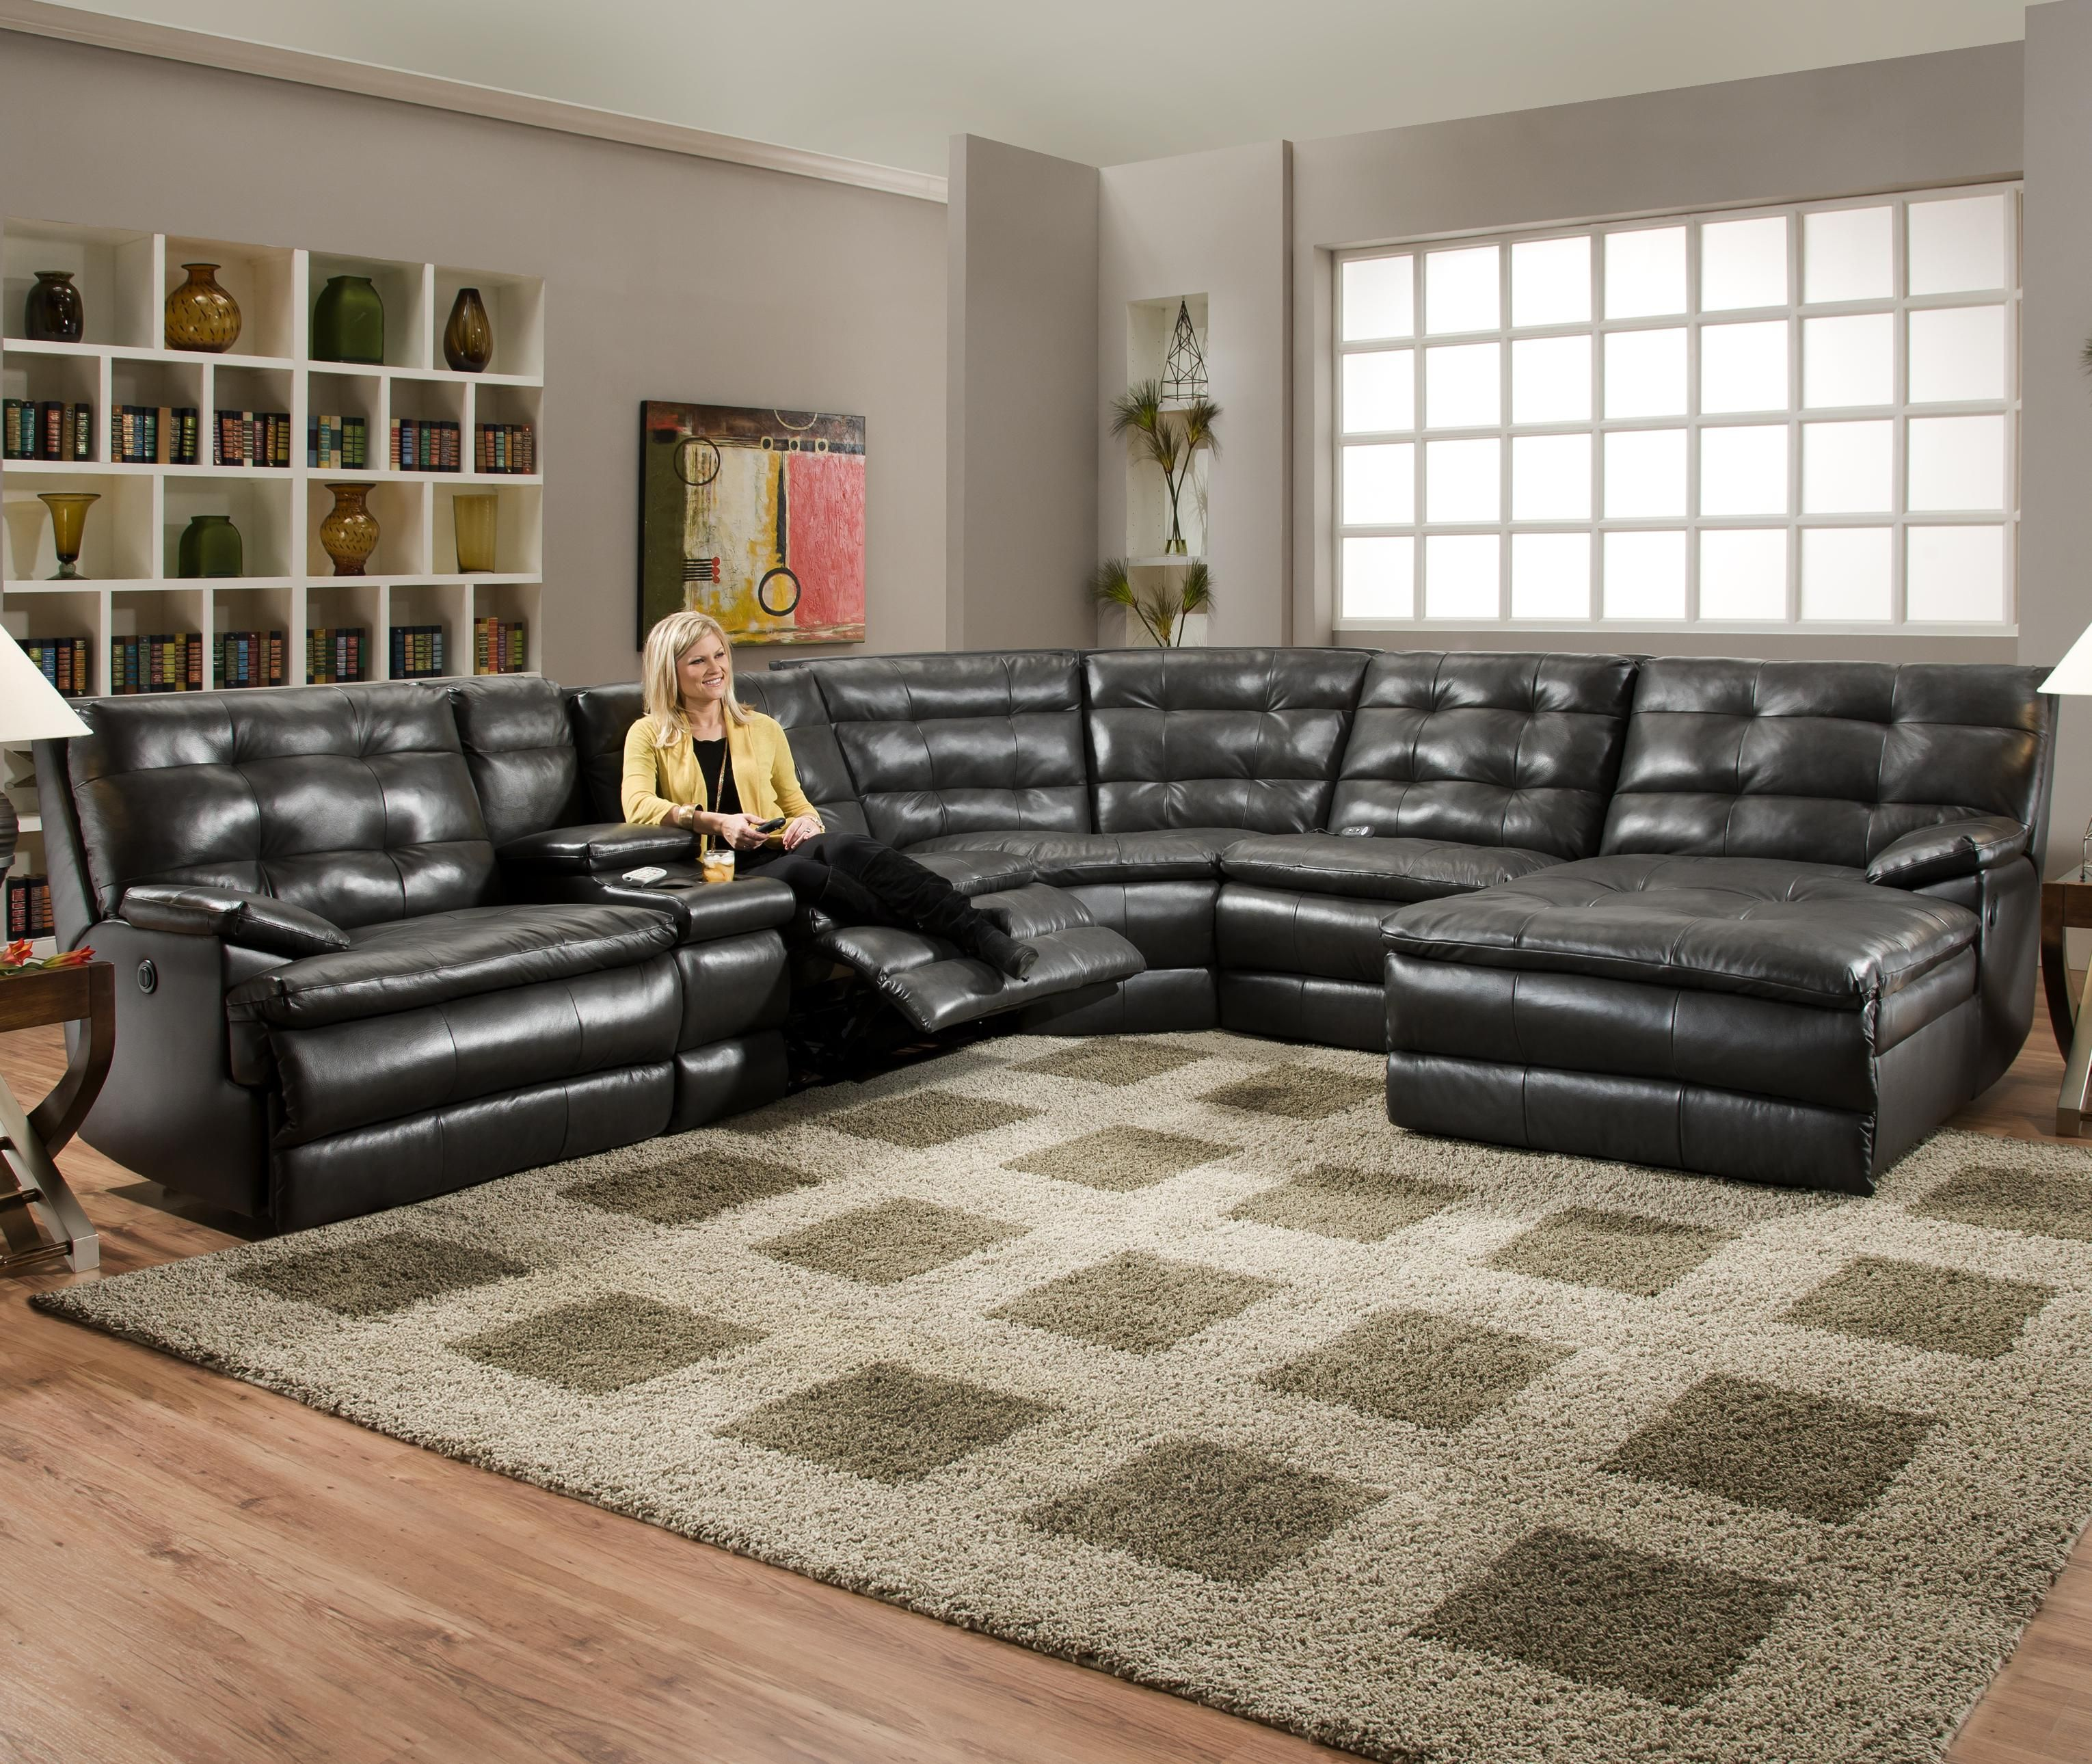 Southern Motion Furniture Comfortscapes Large Partial Power Reclining Sectional Sofa for Five or More Guests : power reclining sectional sofa - Sectionals, Sofas & Couches